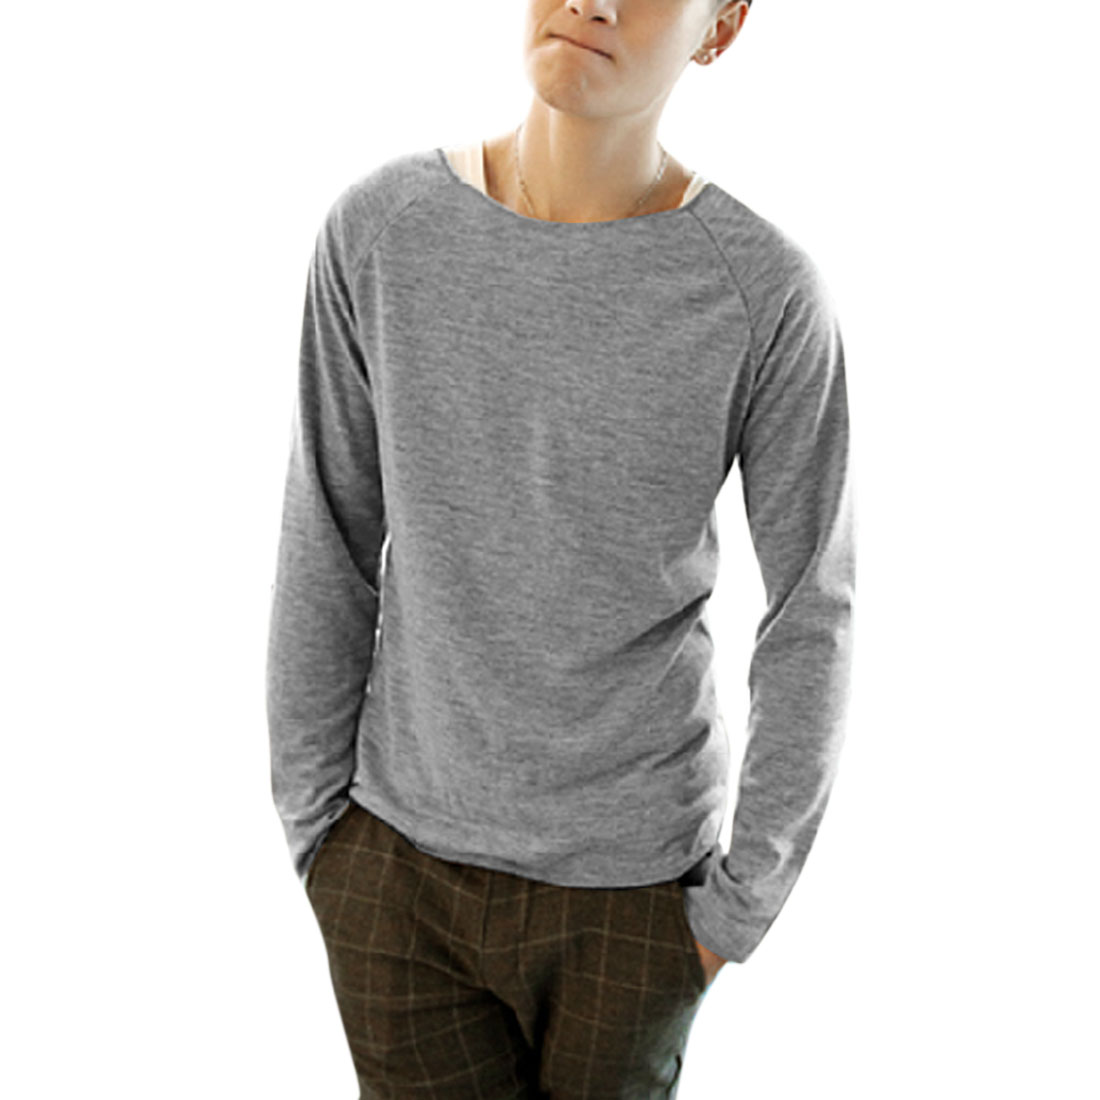 Men Leisure Heather Gray Round Neck Long Sleeve Knit Top M